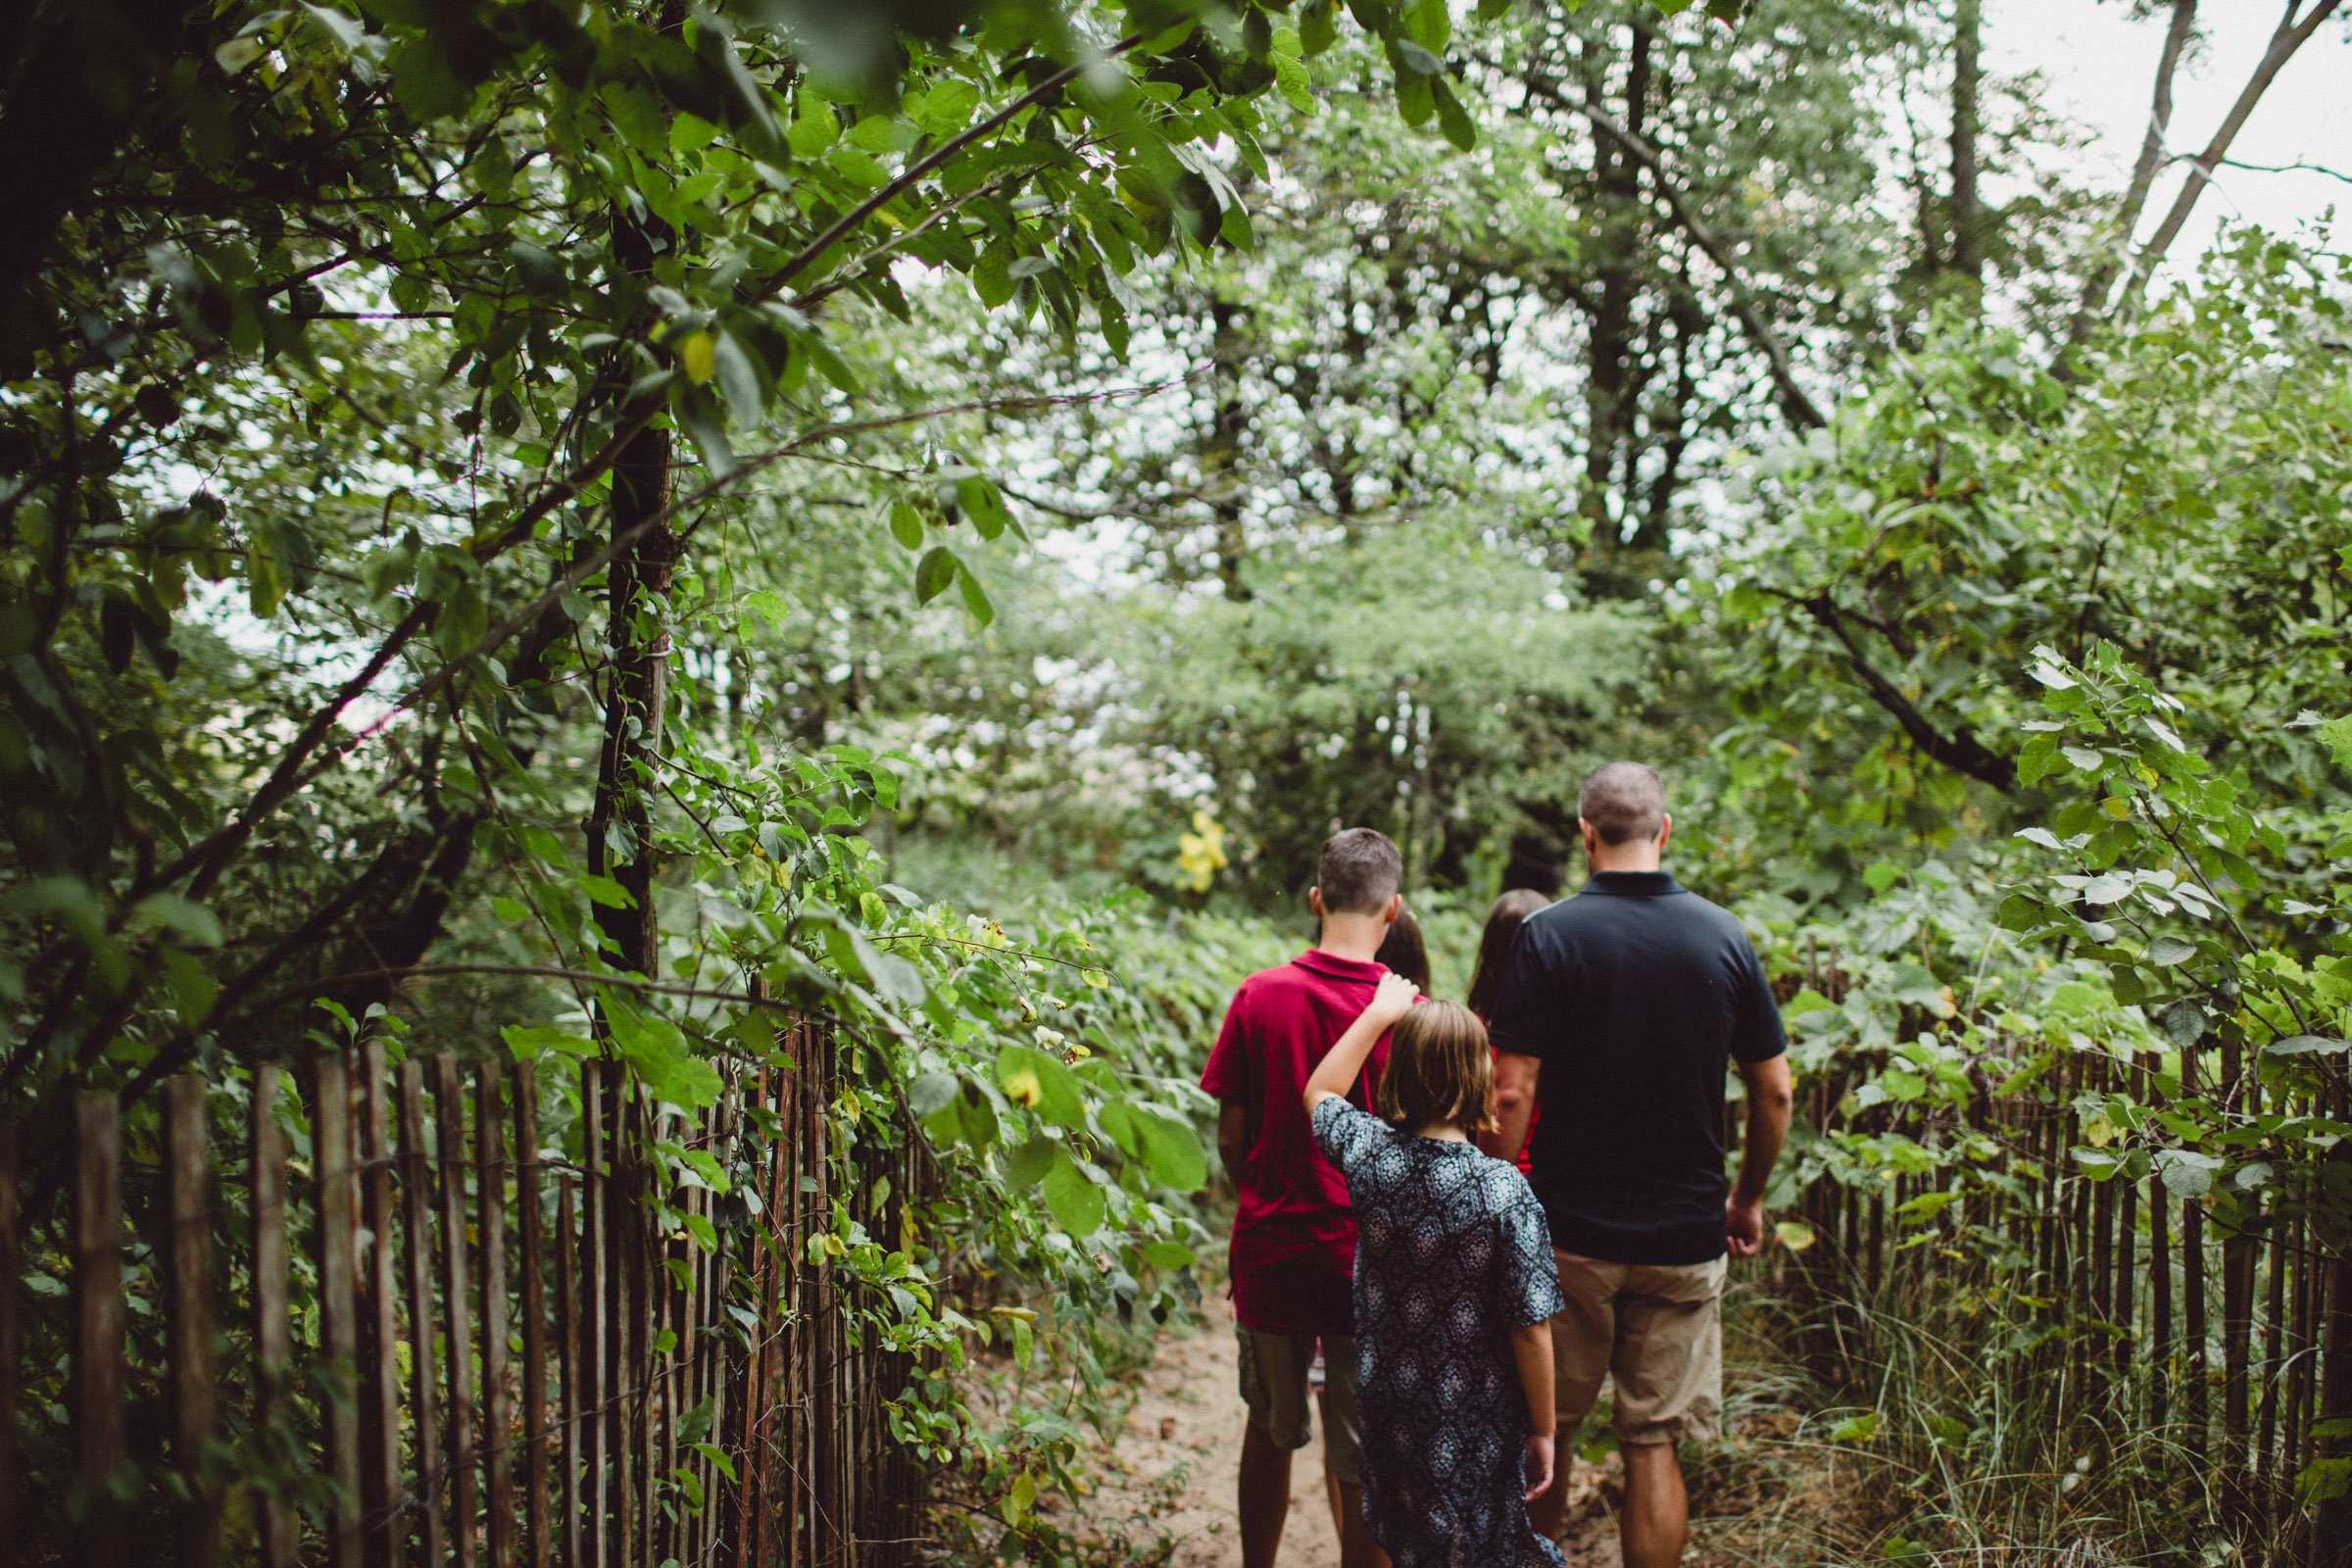 family exploring together through forested trail